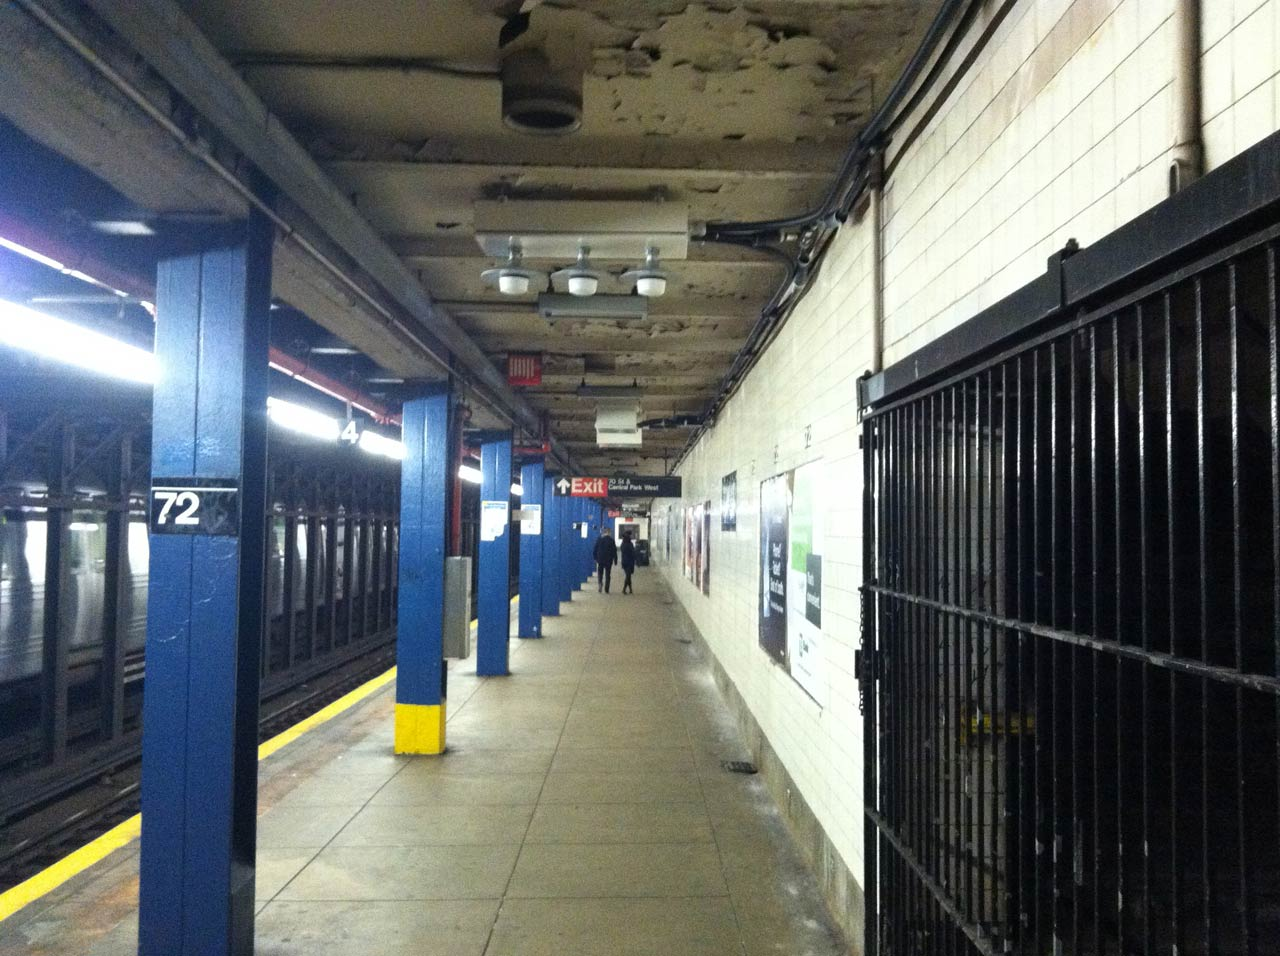 02-Antennas-on-cieling-at-Times-Square-Subway